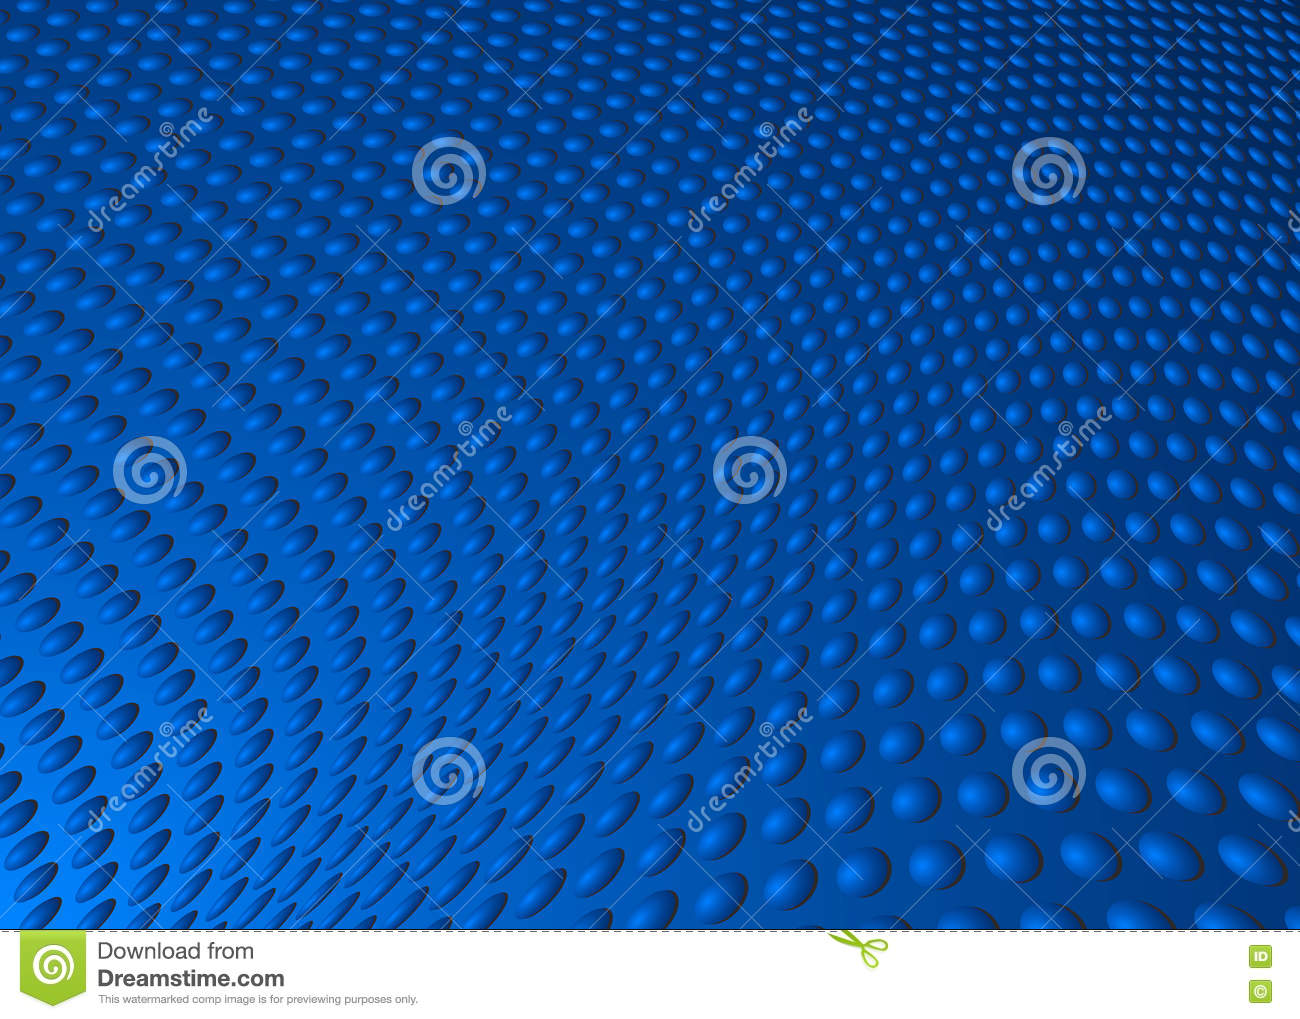 Dot Swirl Background Illustration azul abstracto